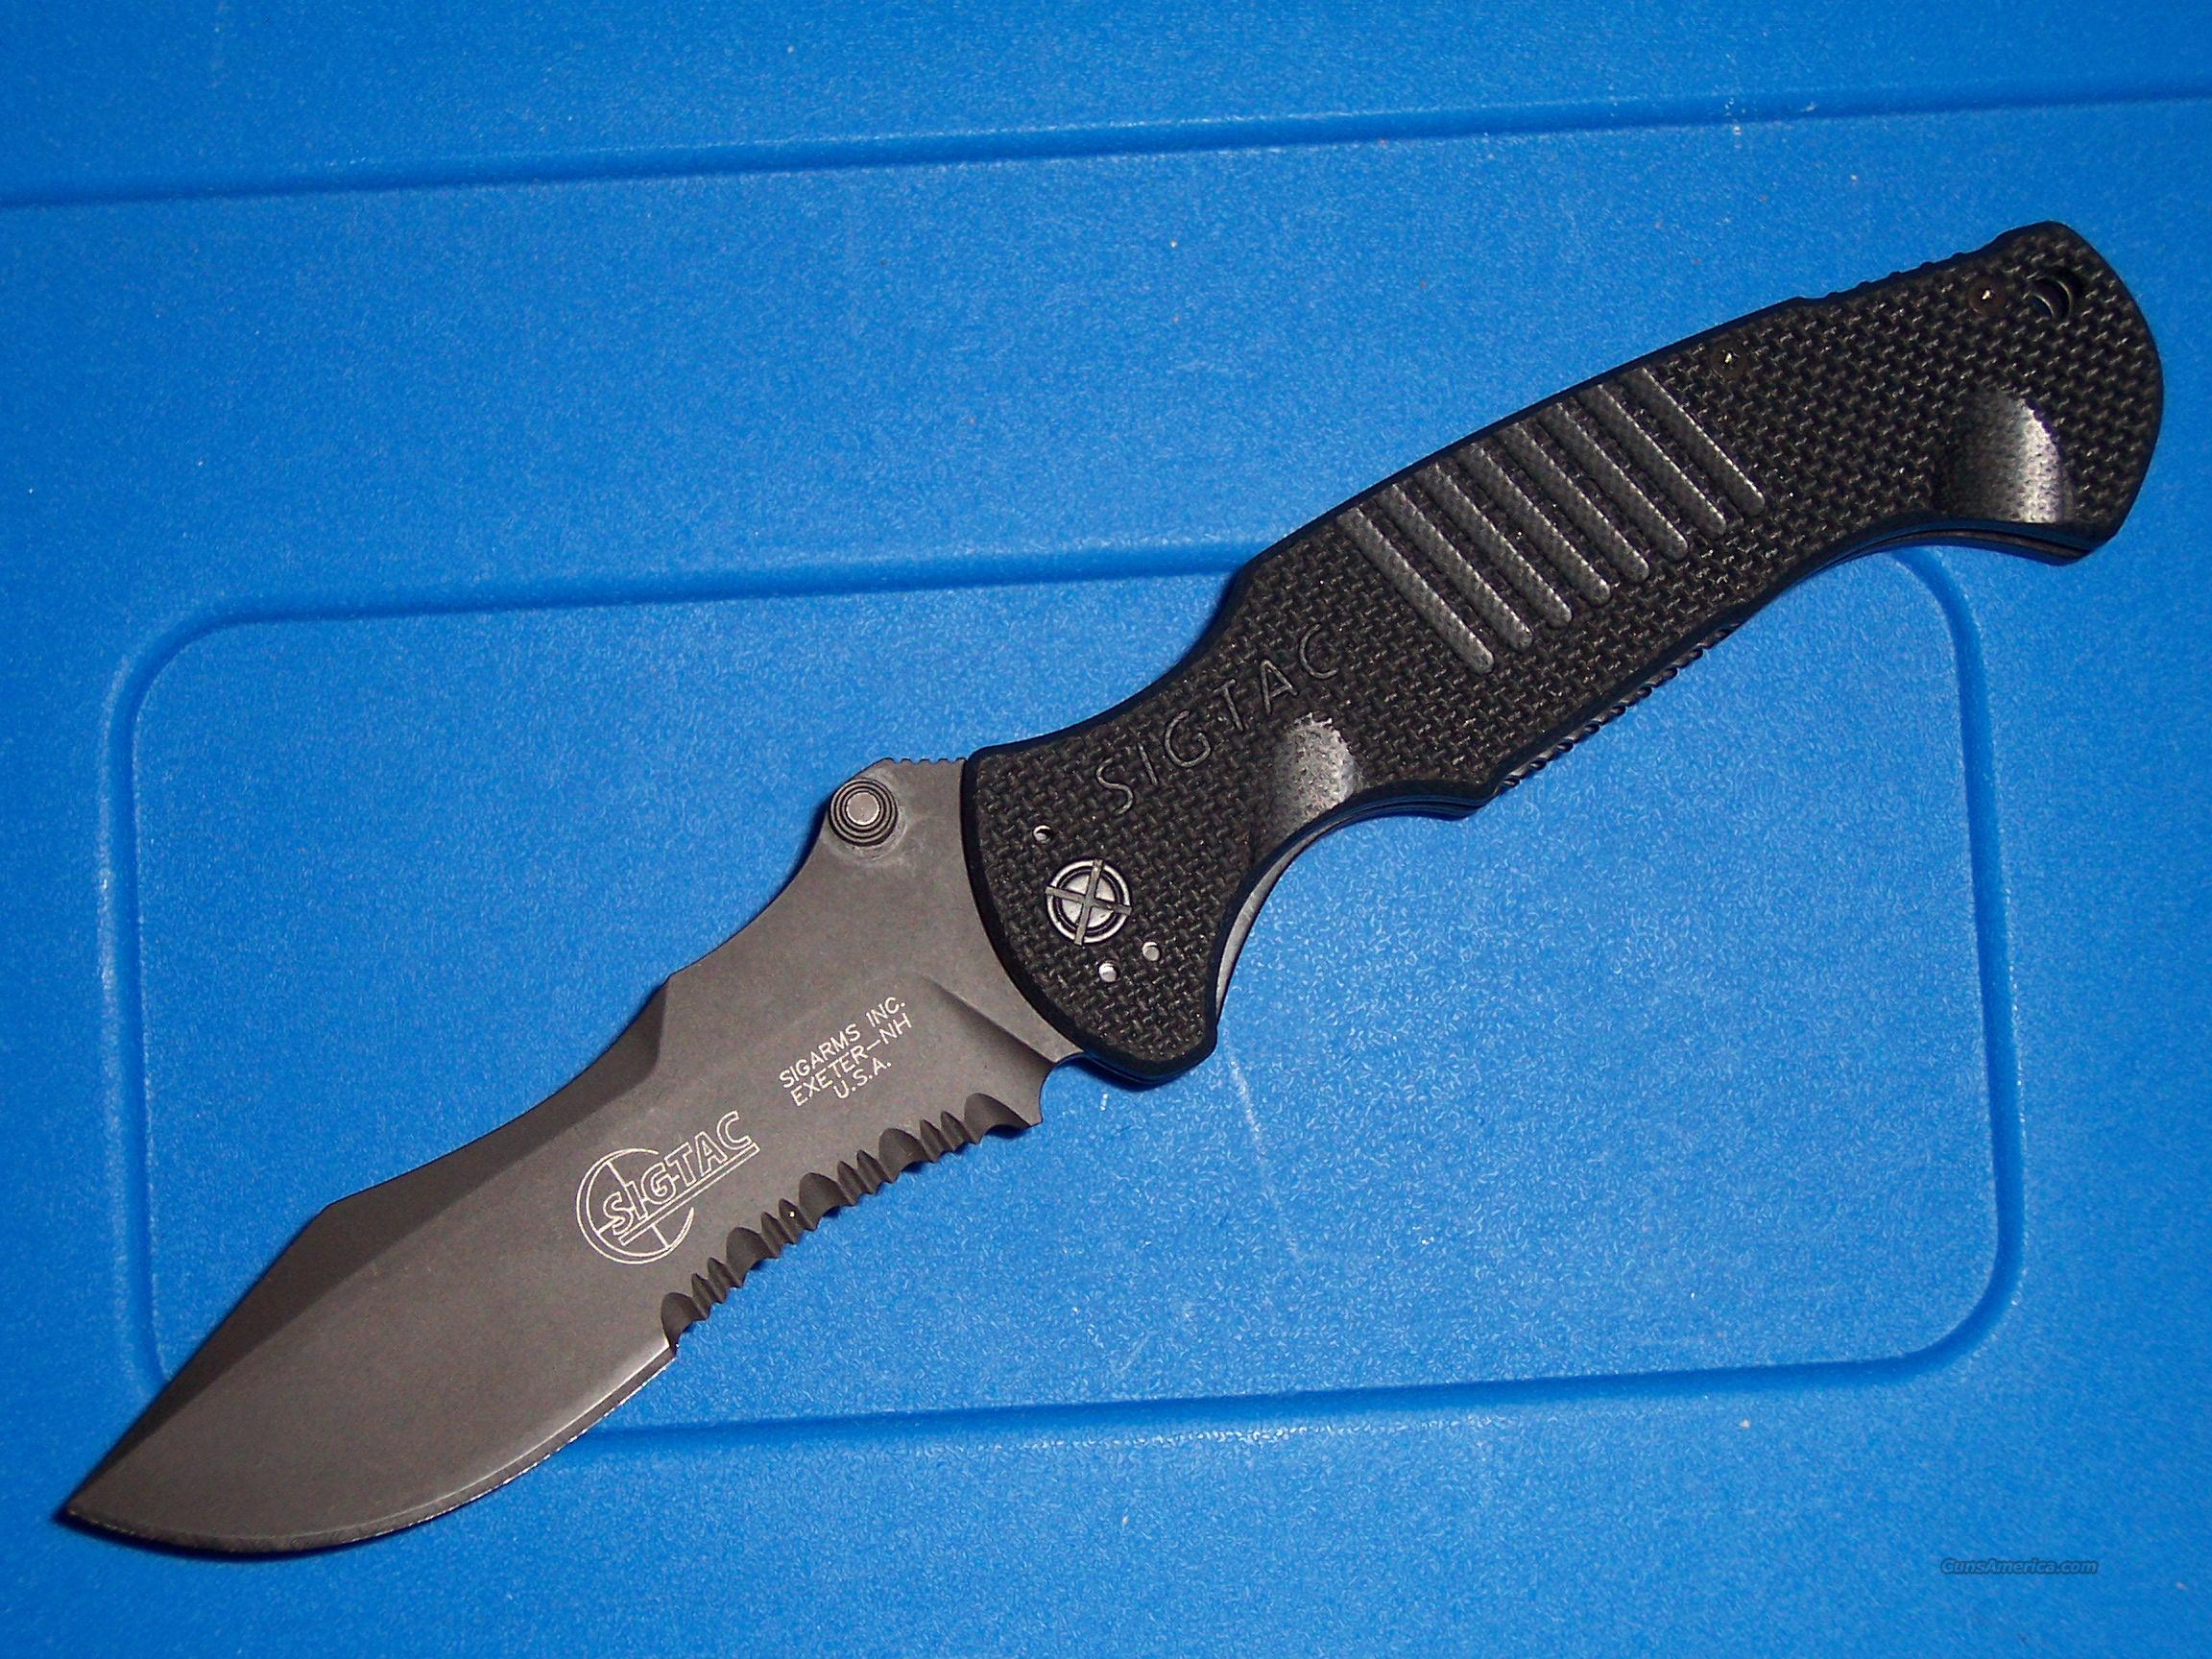 SIG SAUER TACT.PTERODACTYL FOLDER  Non-Guns > Knives/Swords > Knives > Folding Blade > Imported